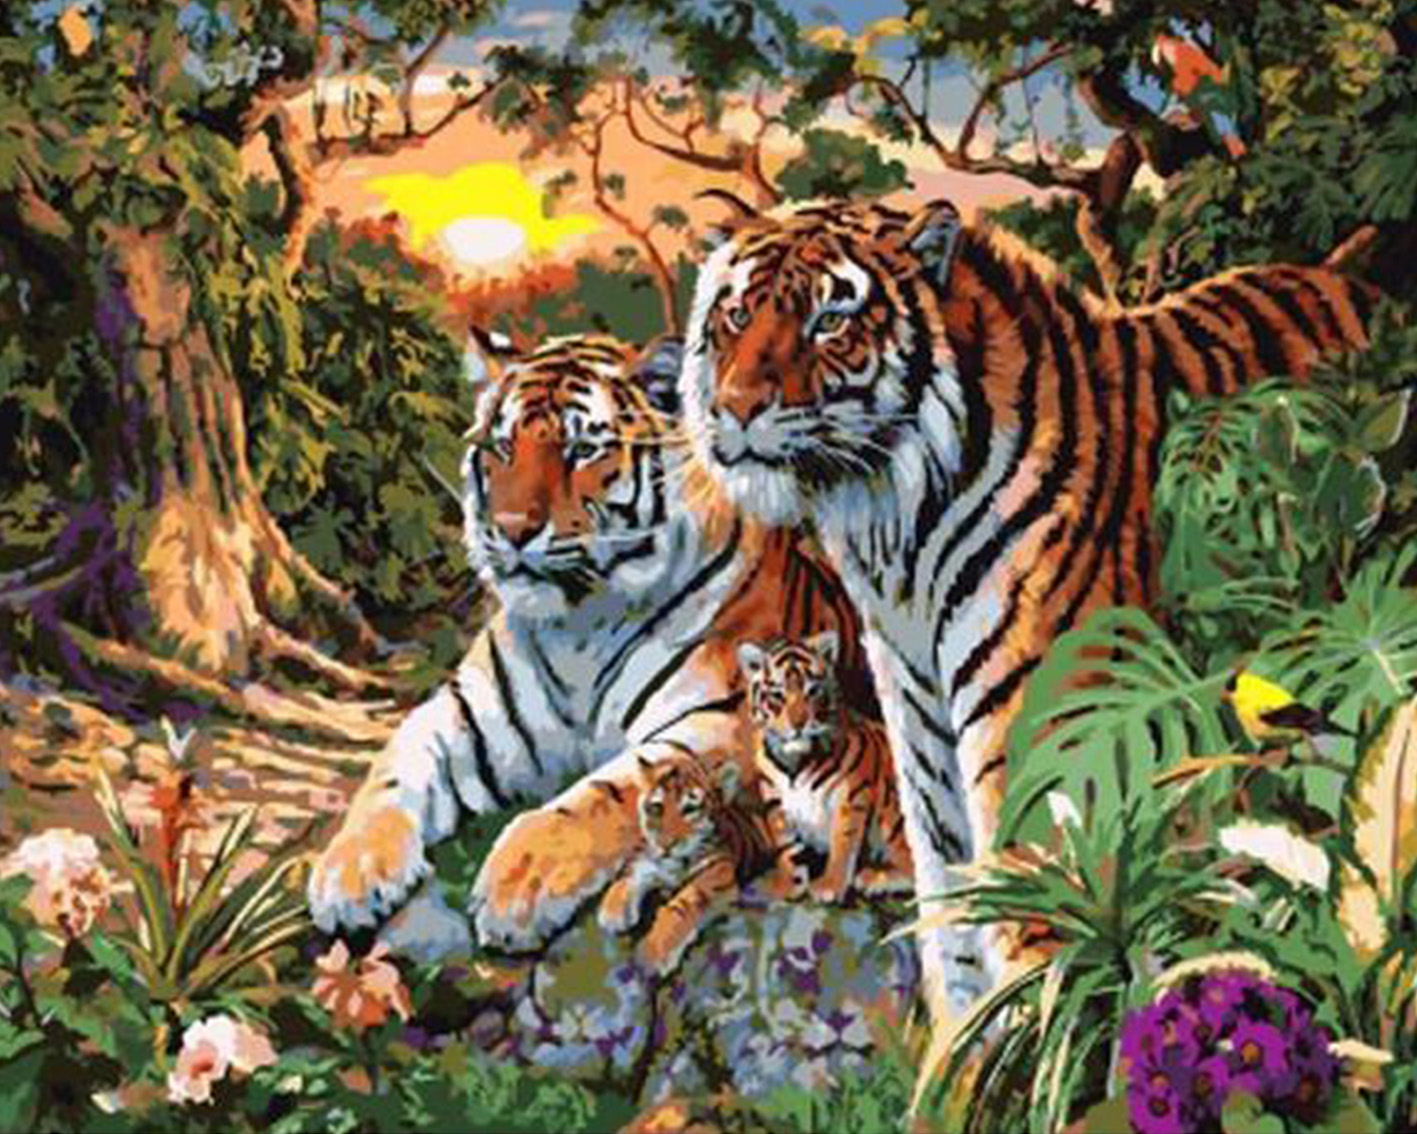 Two tigers By Numbers Modern Wall Art Handpainted Oil Painting On Canvas For Home Decor Frameless Picture 40*50cm